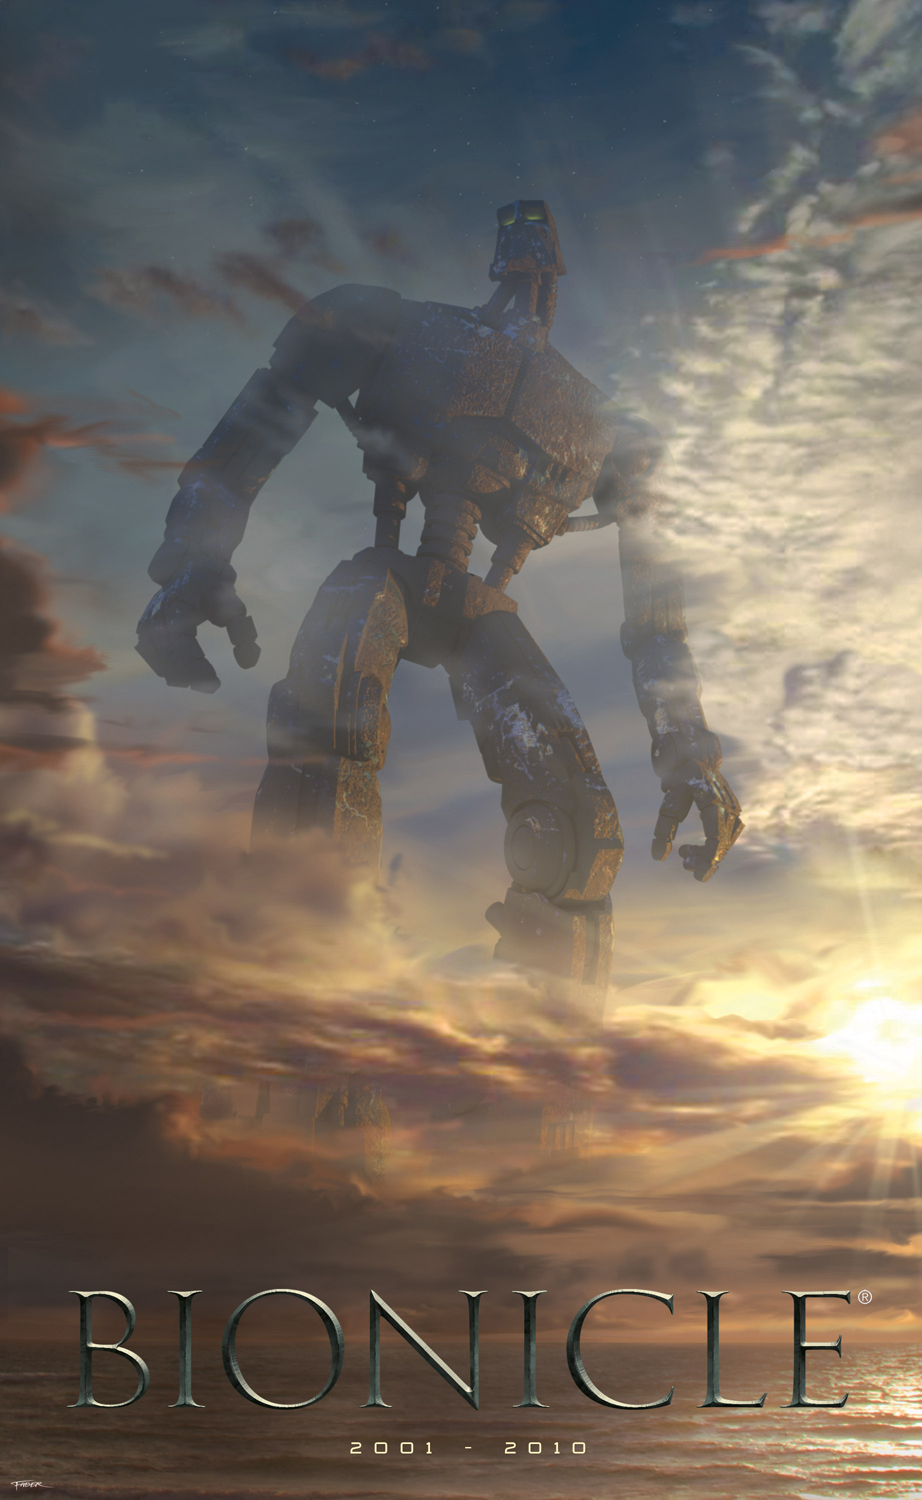 http://www.biosector01.com/wiki/images/7/79/BIONICLE_2001-2010.jpg